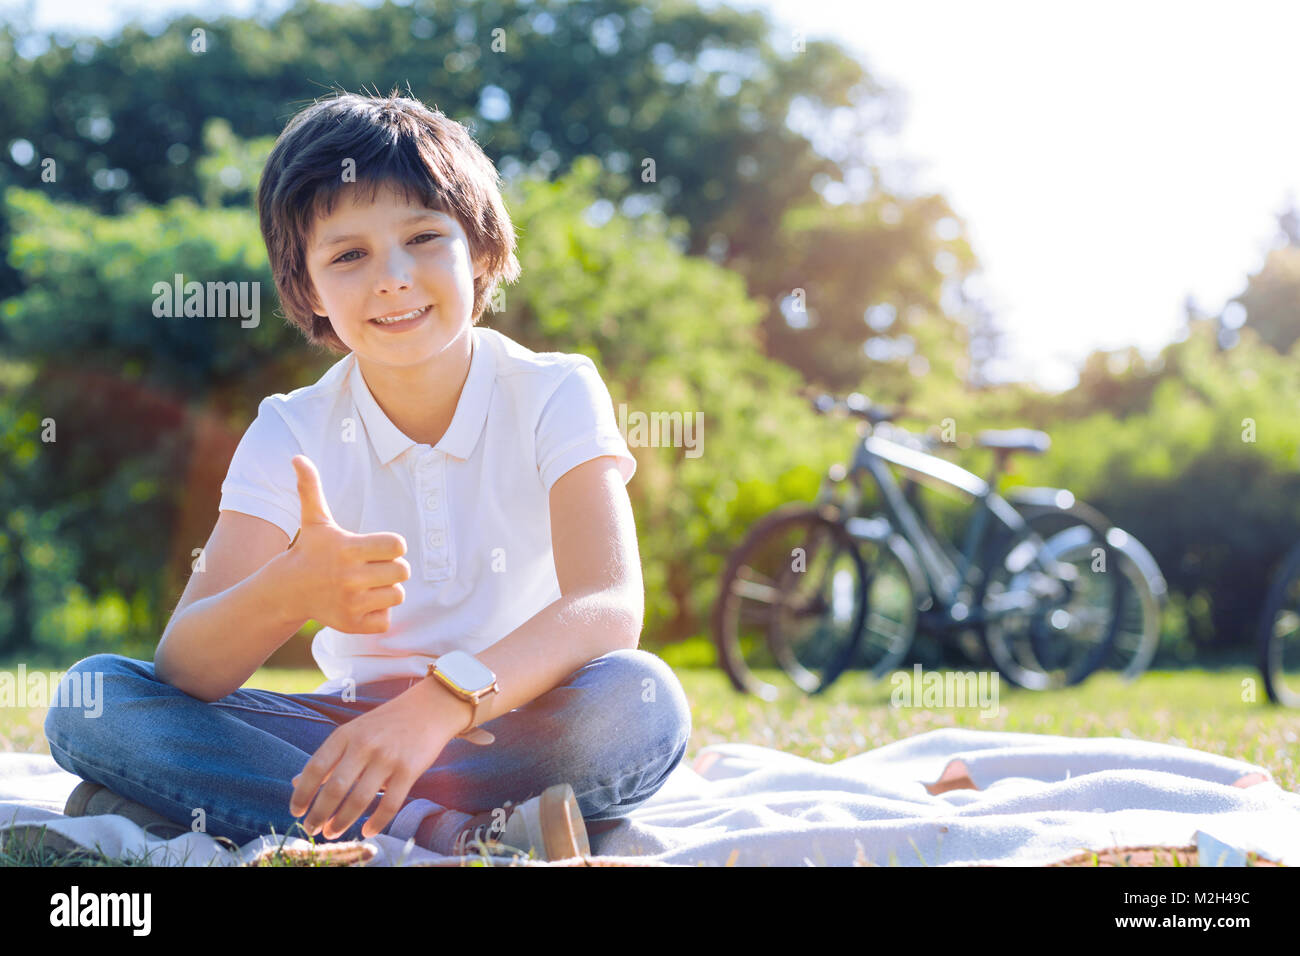 Smiling preteen boy thumbing up outdoors - Stock Image